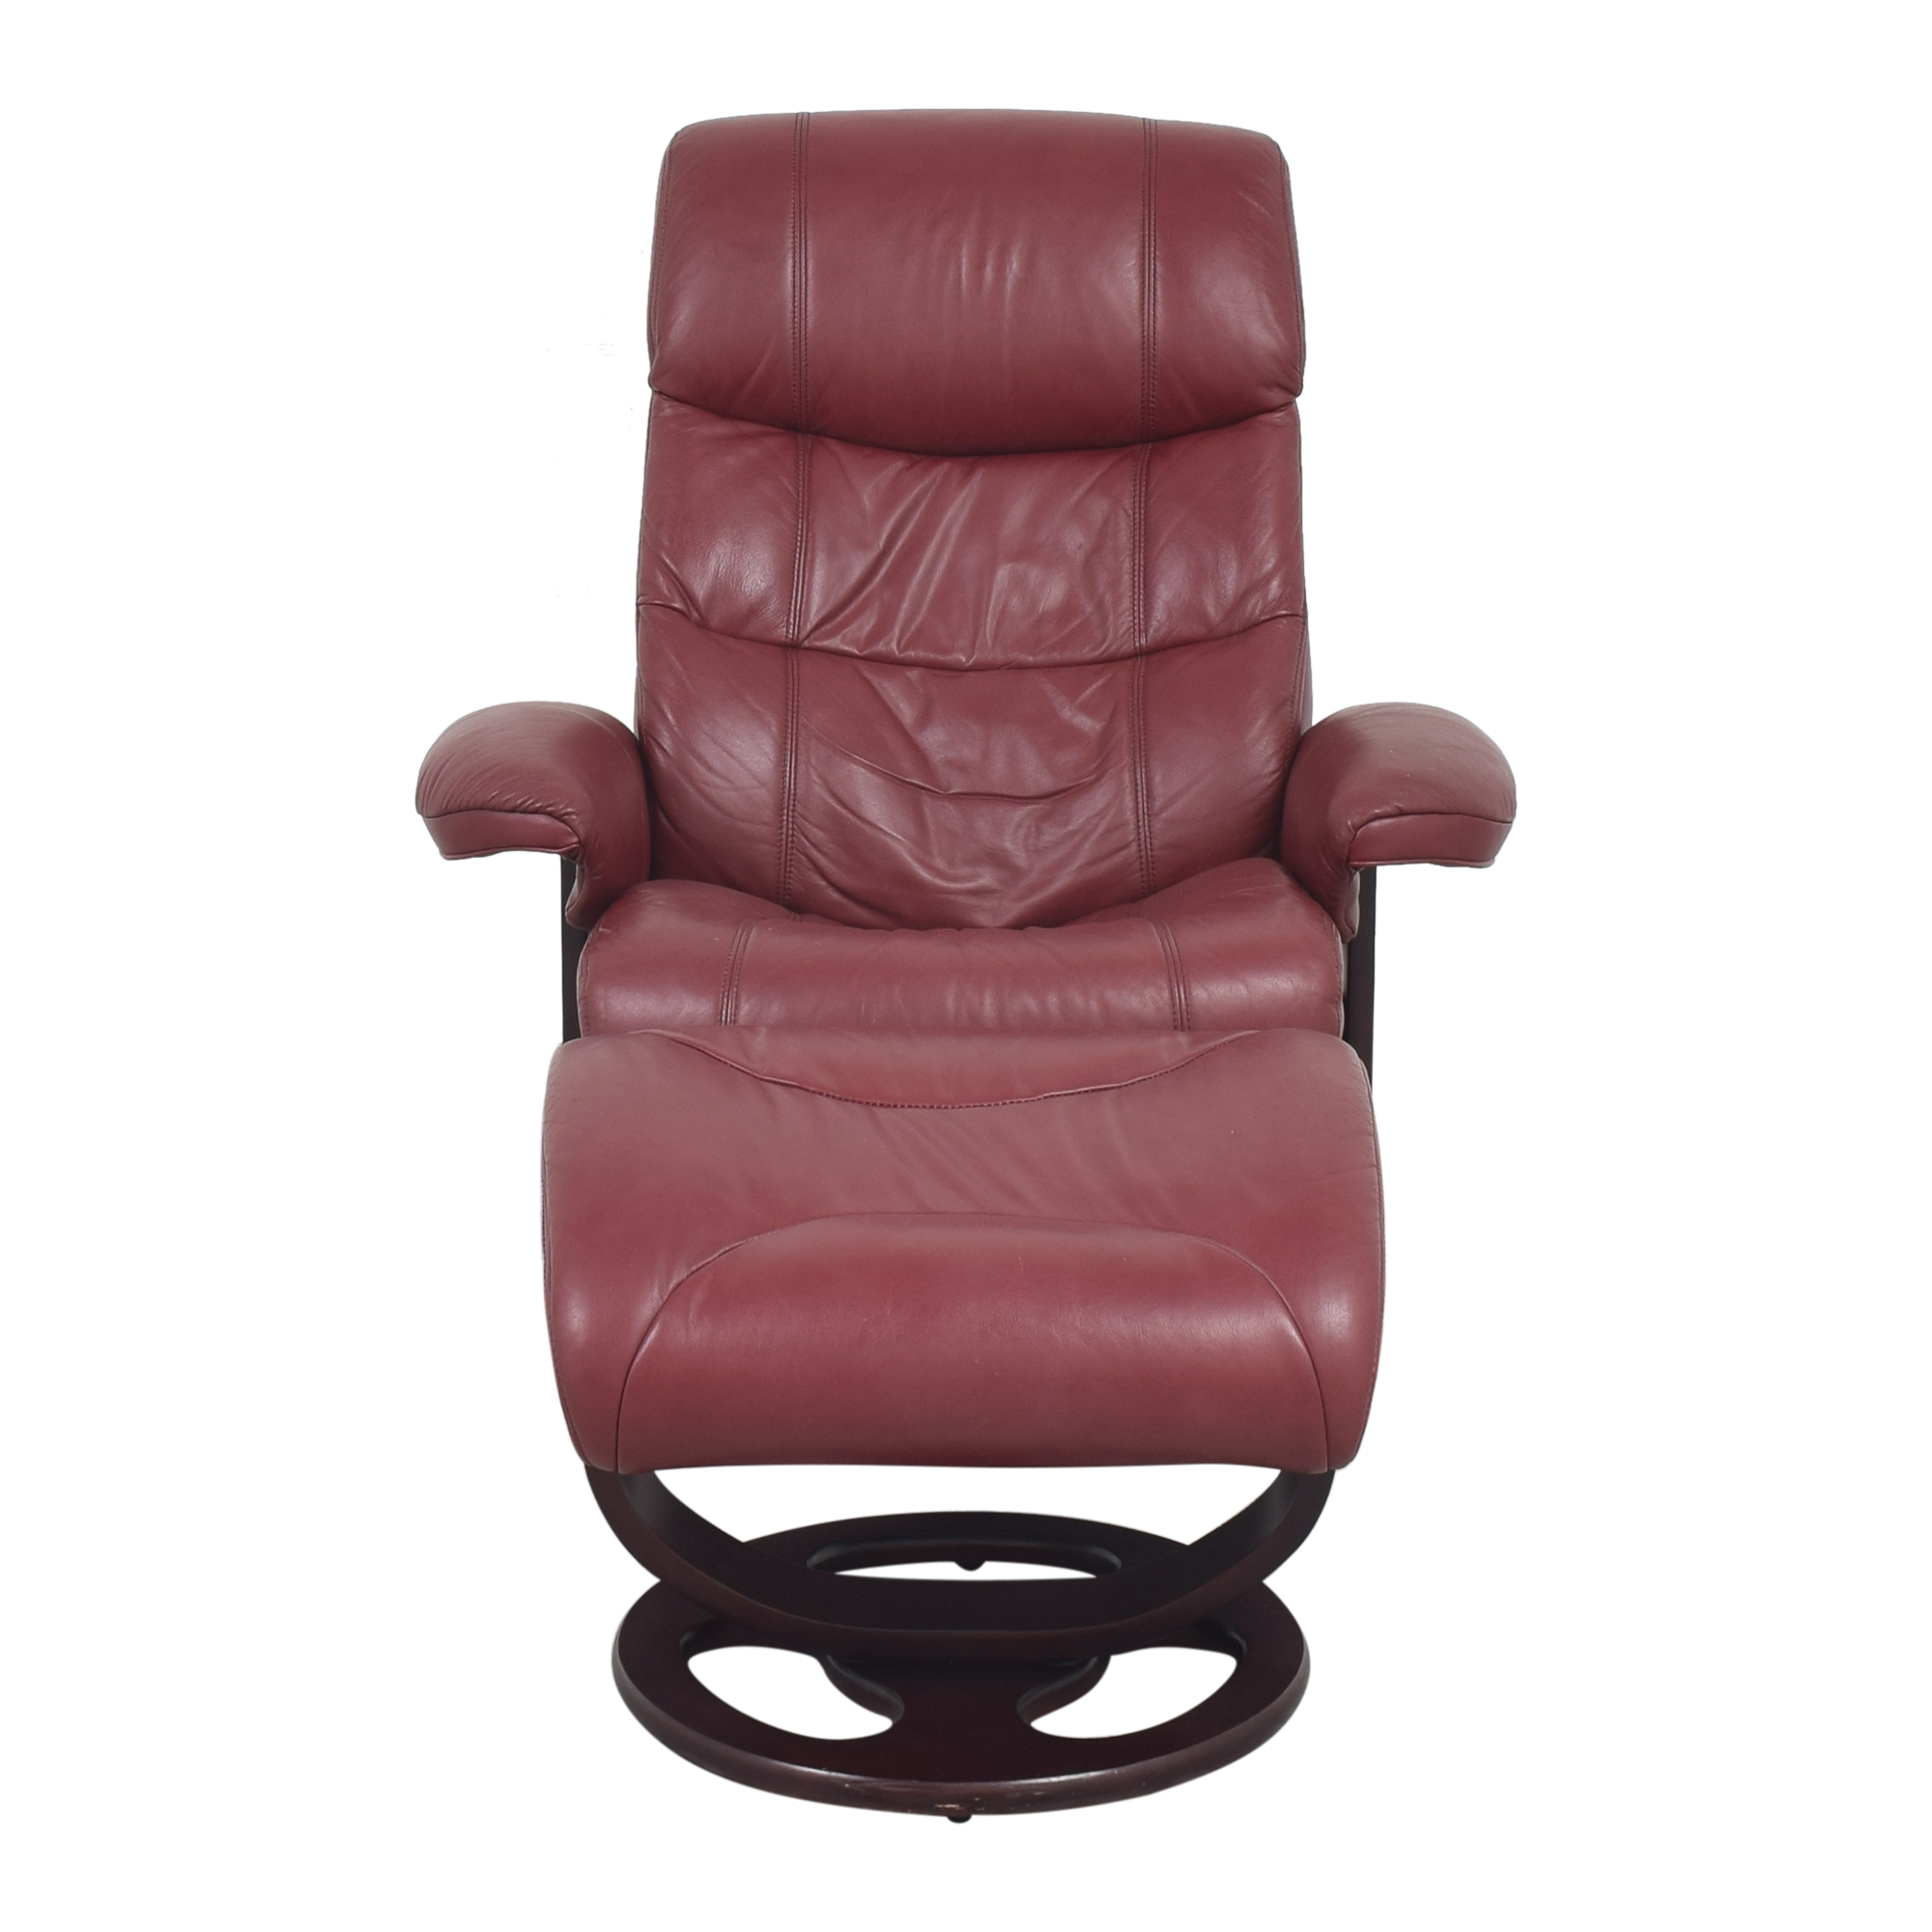 Lane Furniture Lane Furniture Rebel Recliner Chair and Ottoman red and dark brown